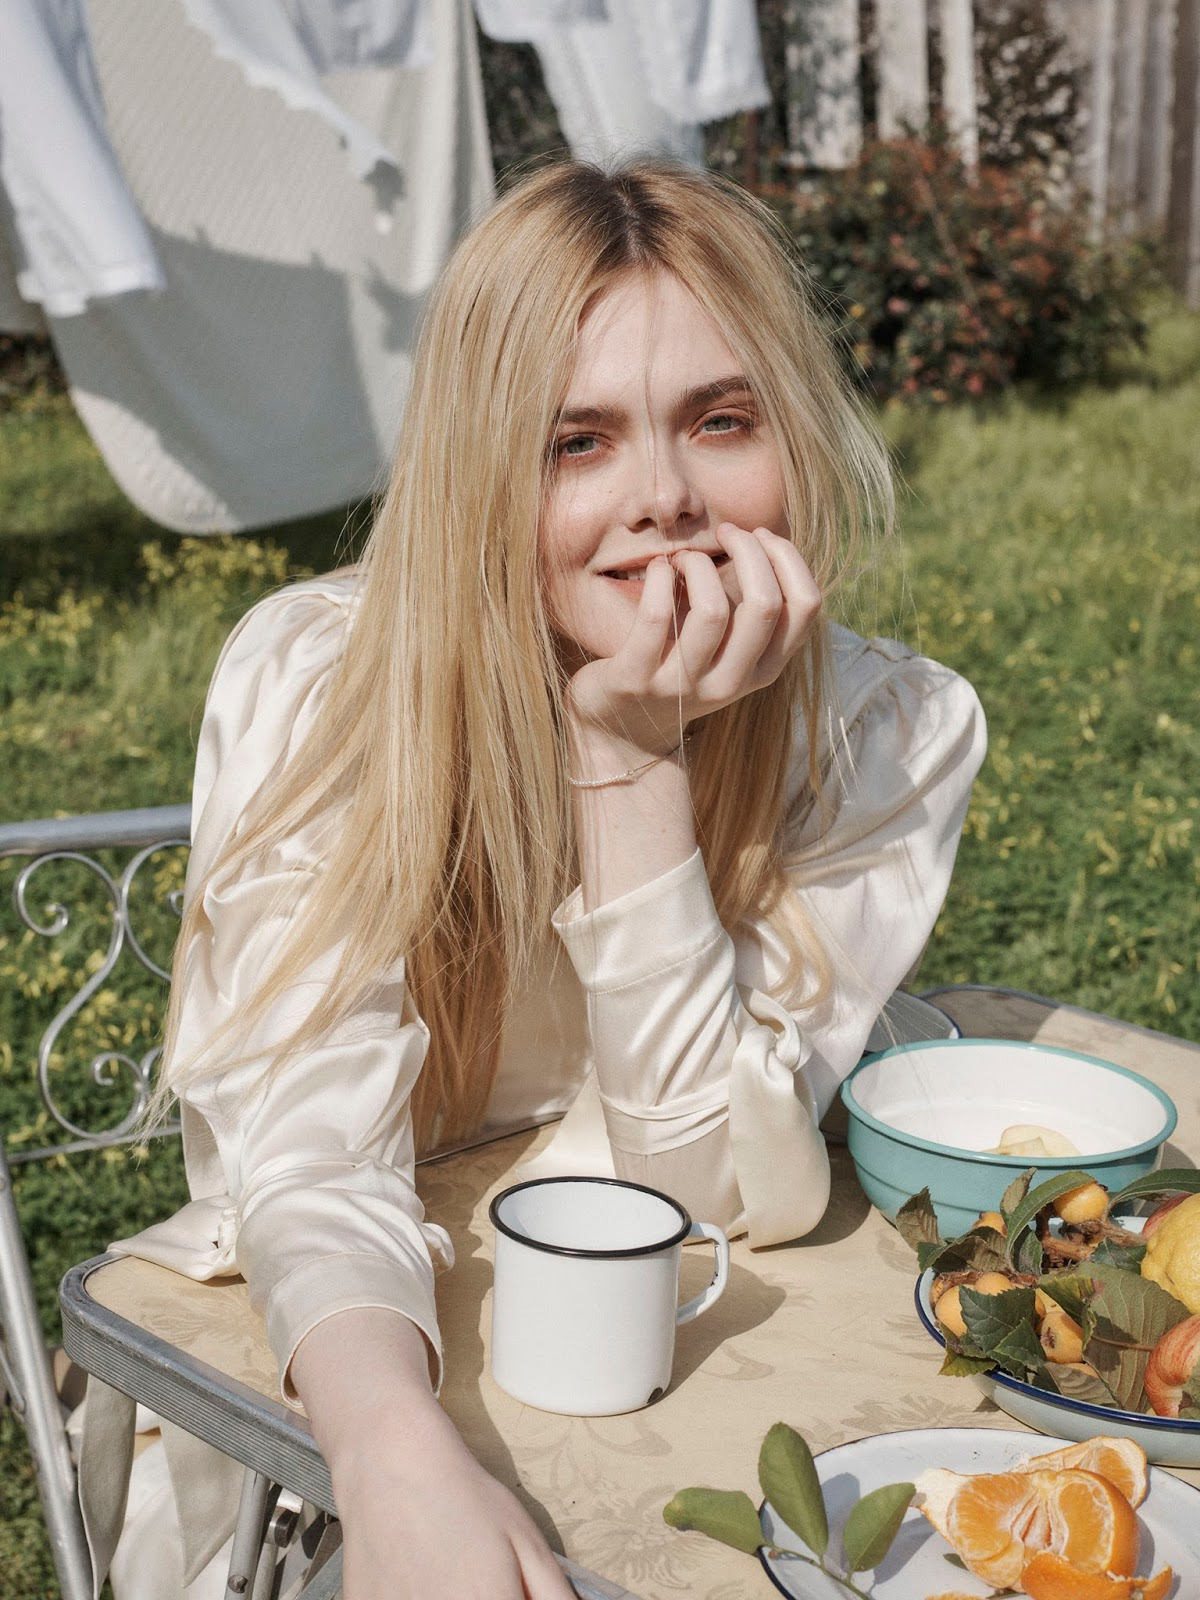 Elle Fanning in Porter Edit April 4th, 2018 by Benny Horne